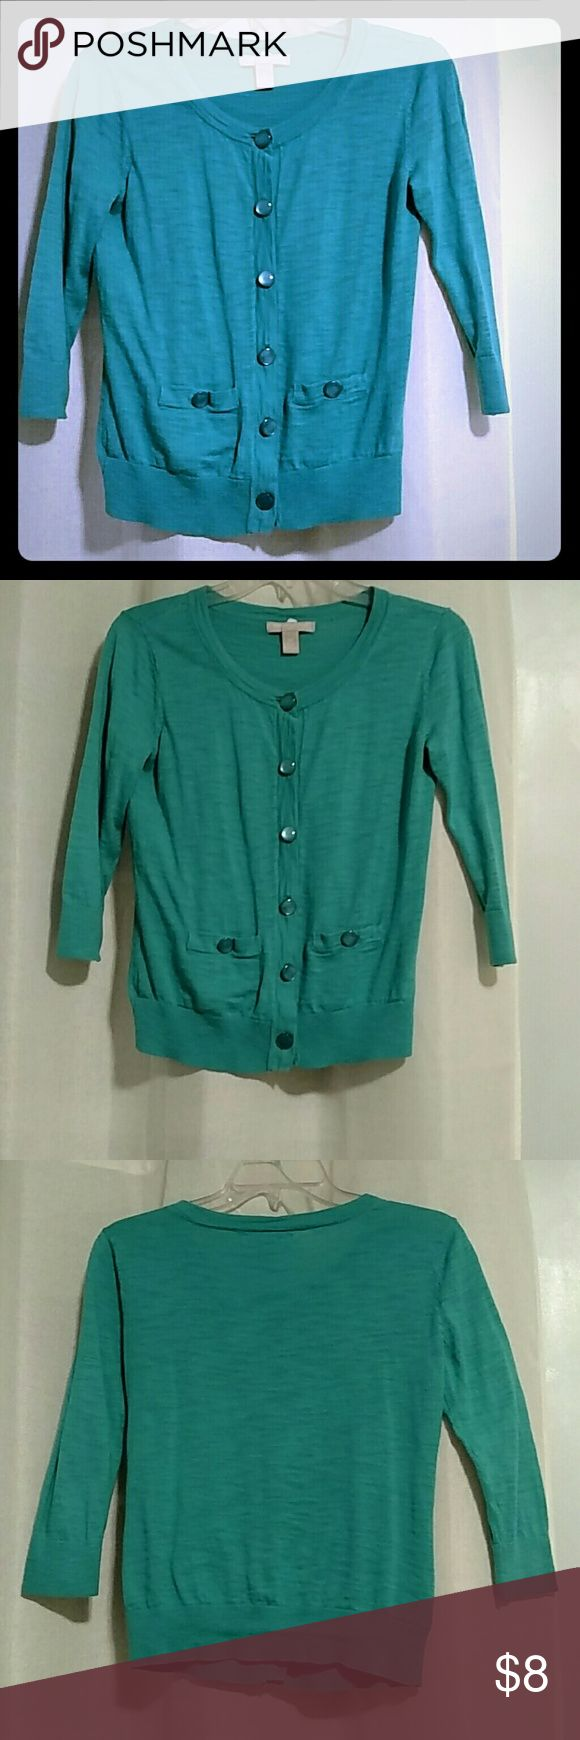 Banana Republic Turquoise Cardigan 3/4 sleeve light weight button up sweater from Banana Republic. Great for spring and chilly summer nights. Banana Republic Sweaters Cardigans